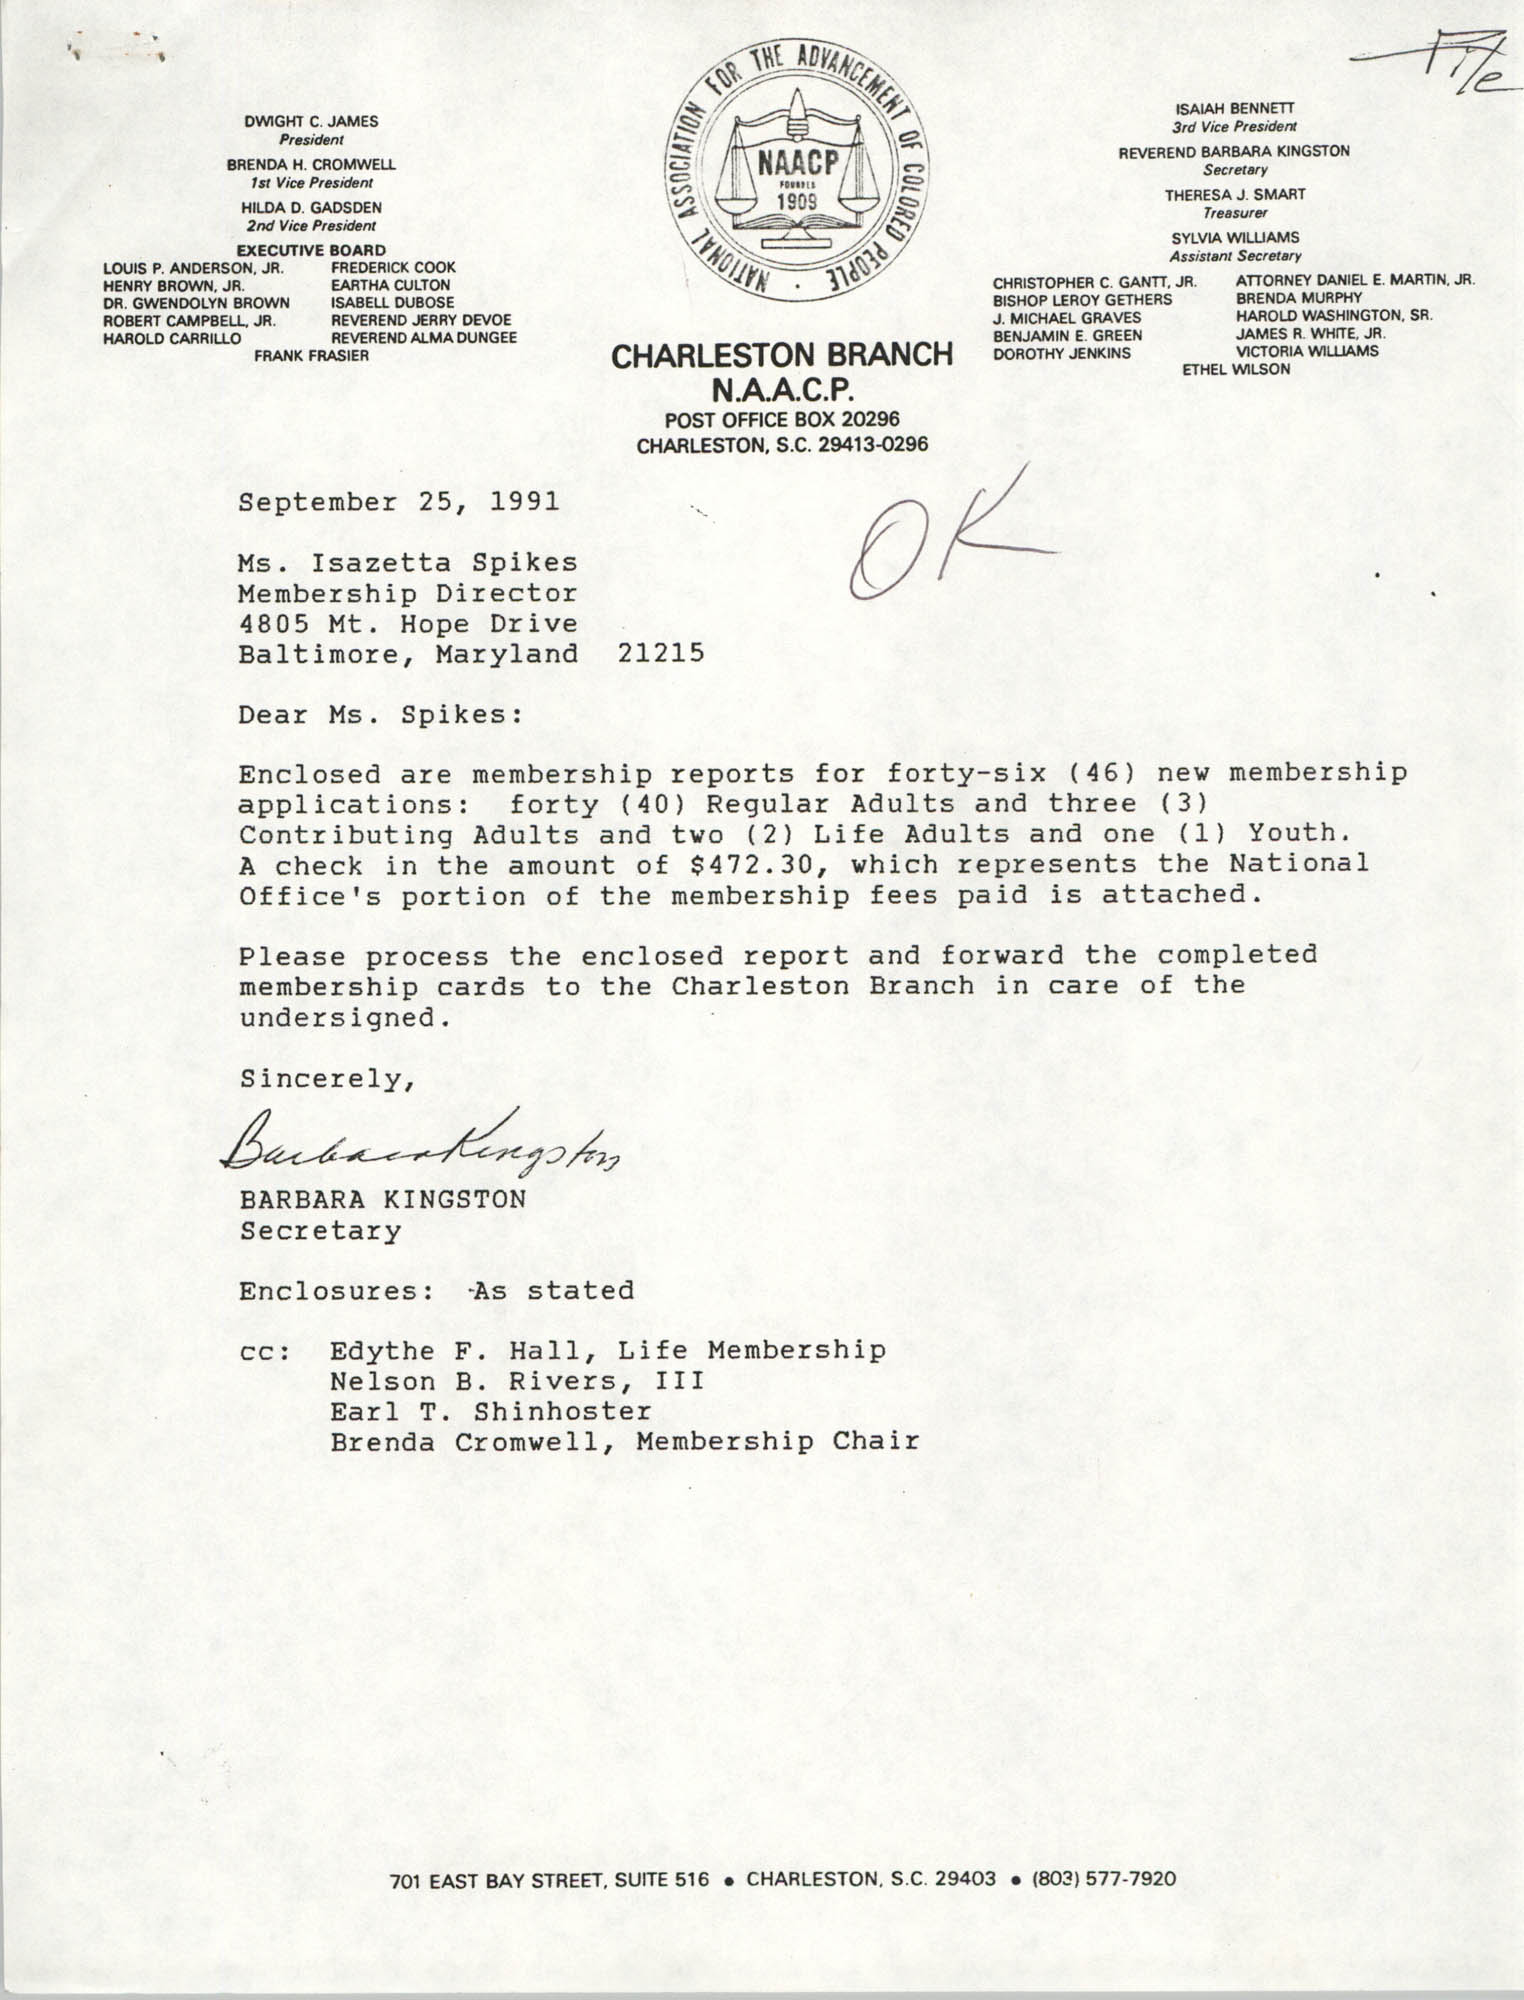 Letter from Barbara Kingston to Isazetta Spikes, September 25, 1991